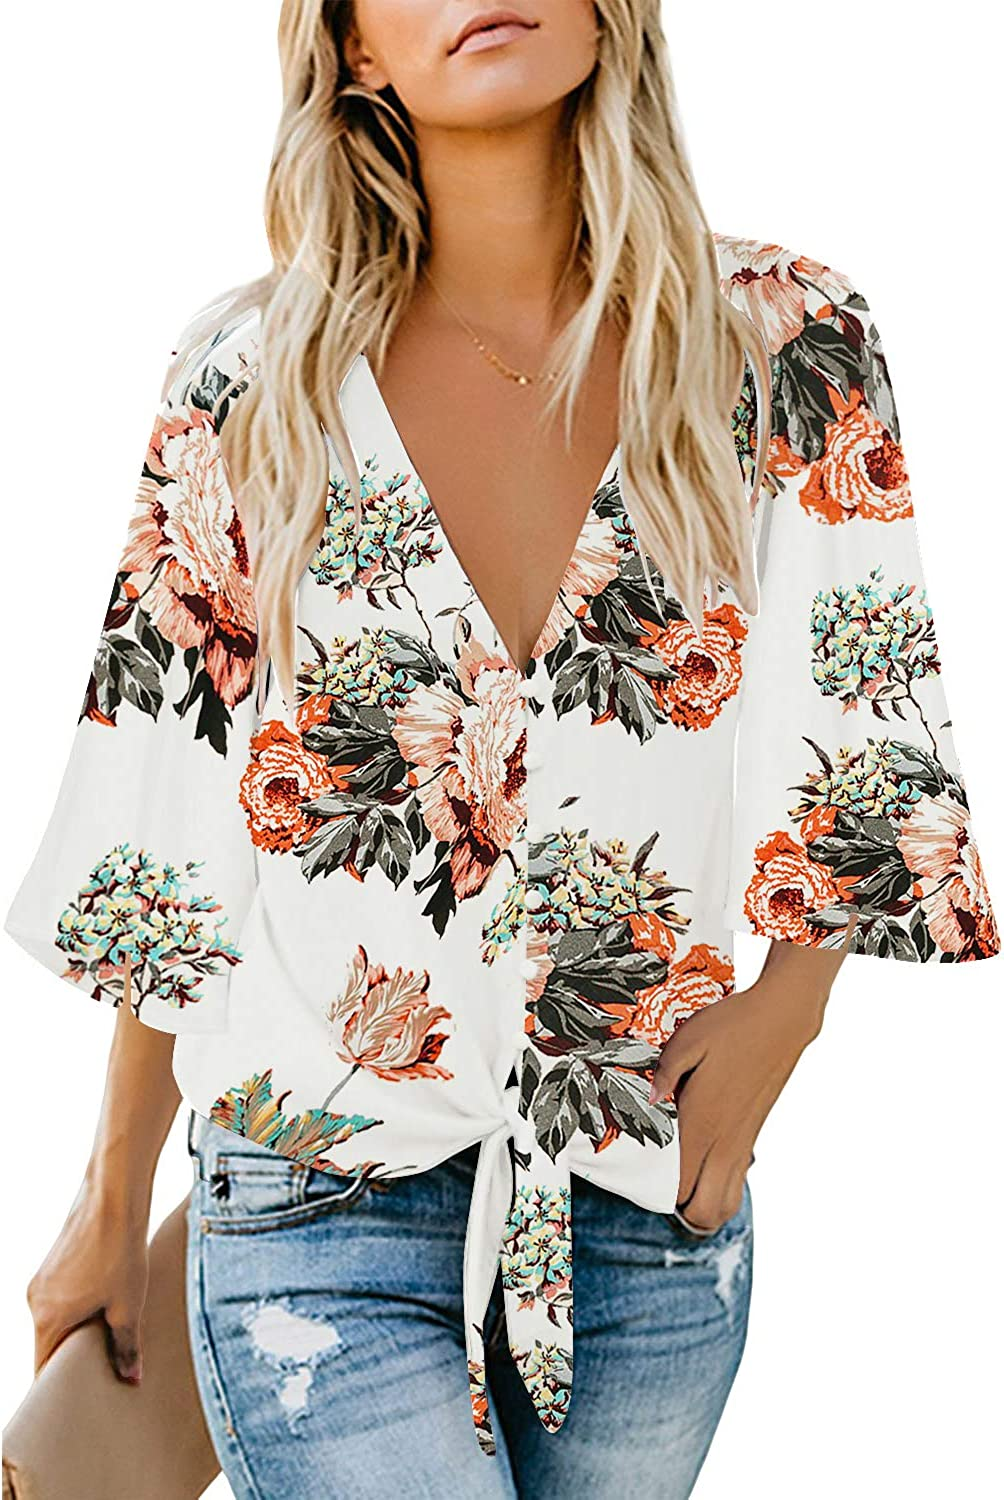 High quality luvamia Women's V Neck Tops 3 4 Floral Translated Tie Blouses Sleeve B Knot